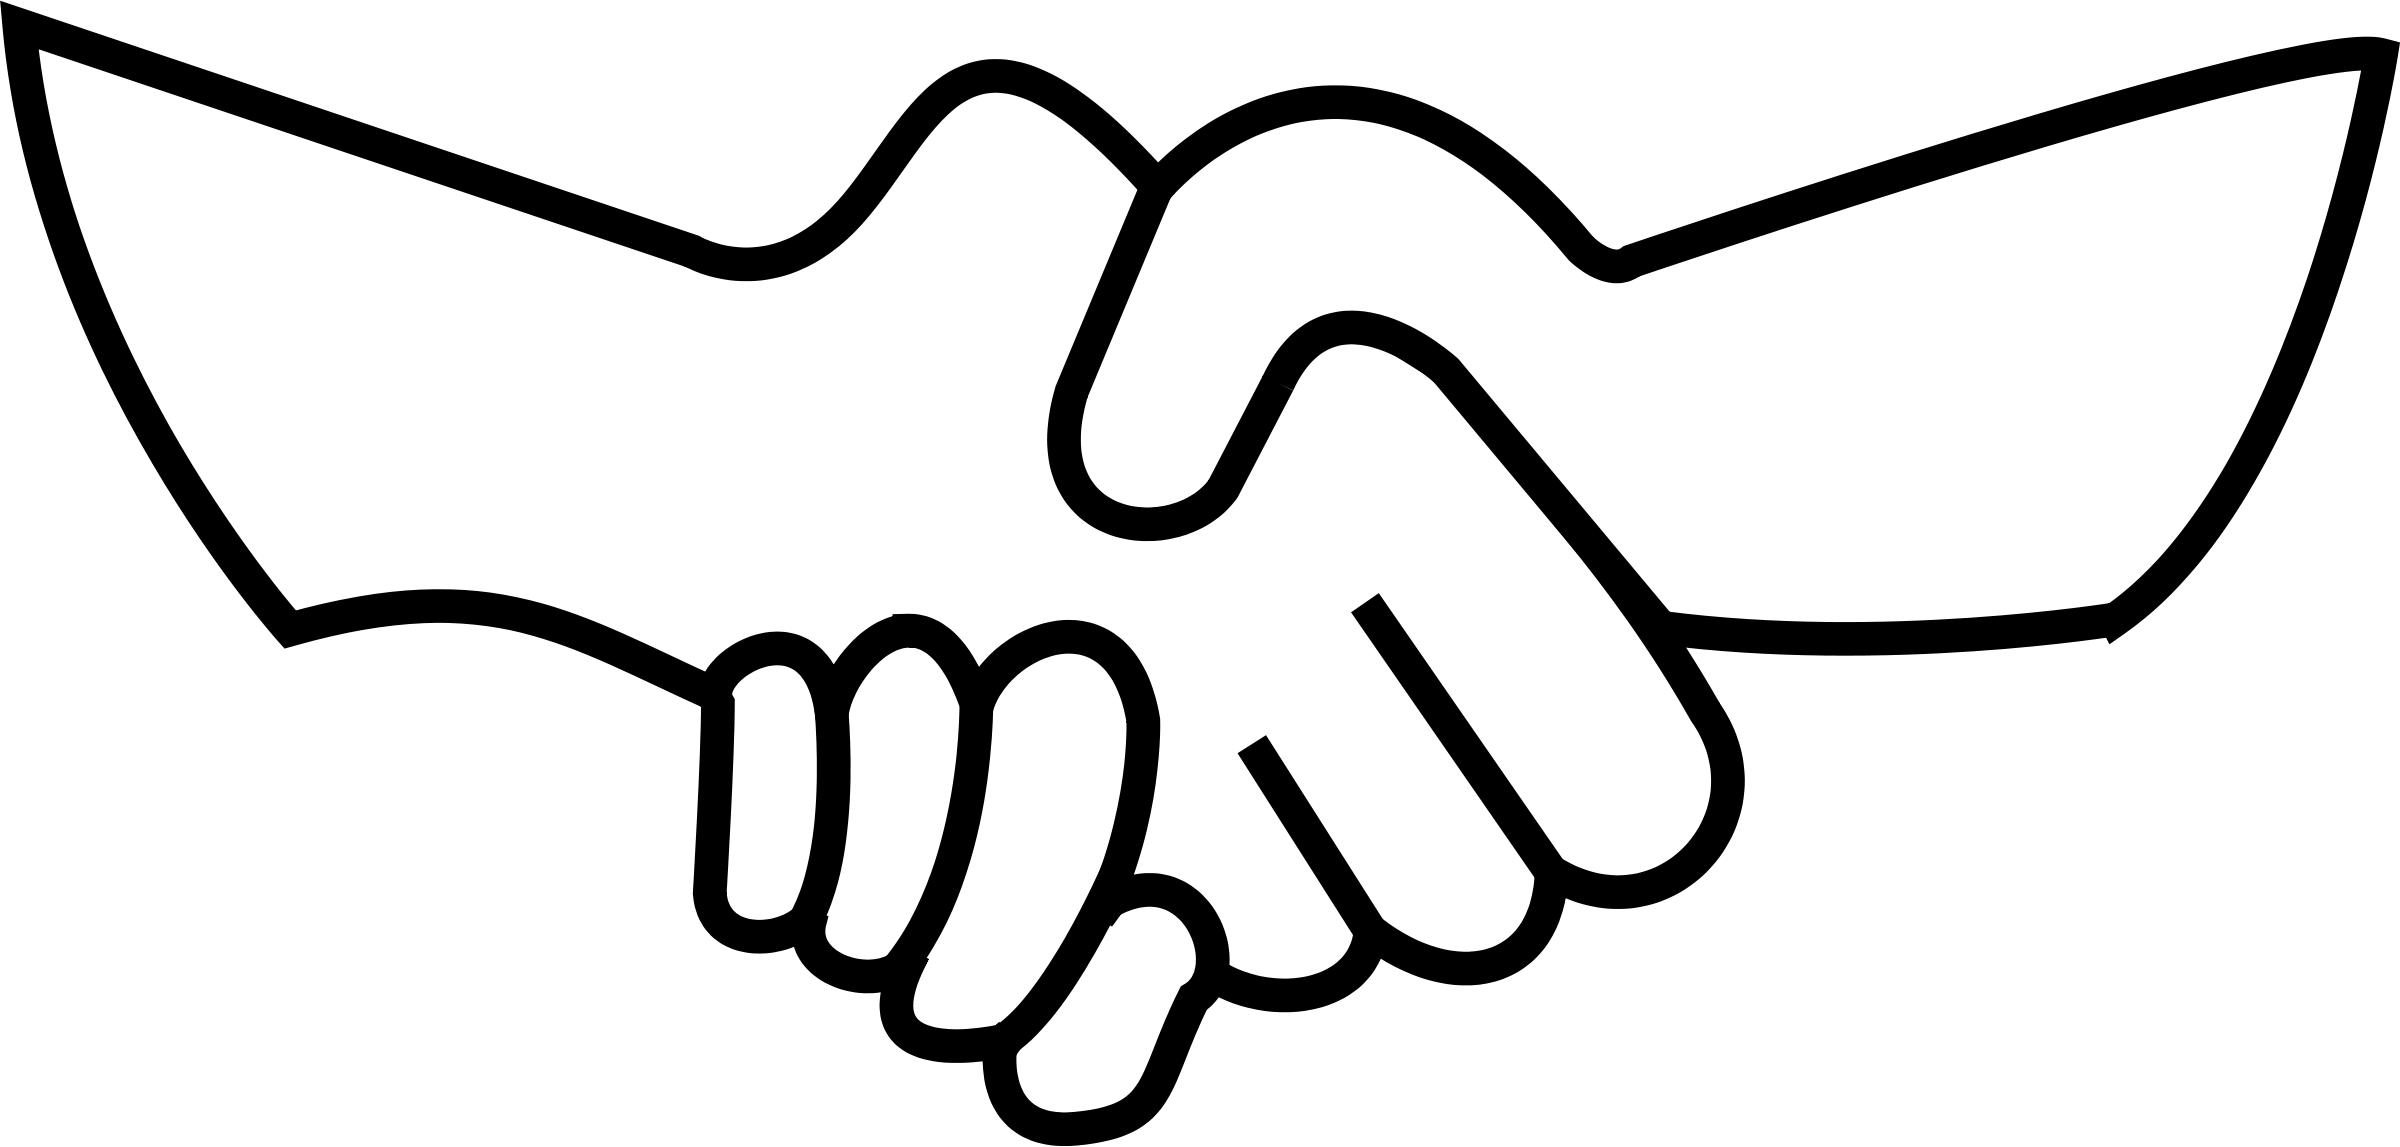 jpg transparent library Helping Hand Black And White Clipart